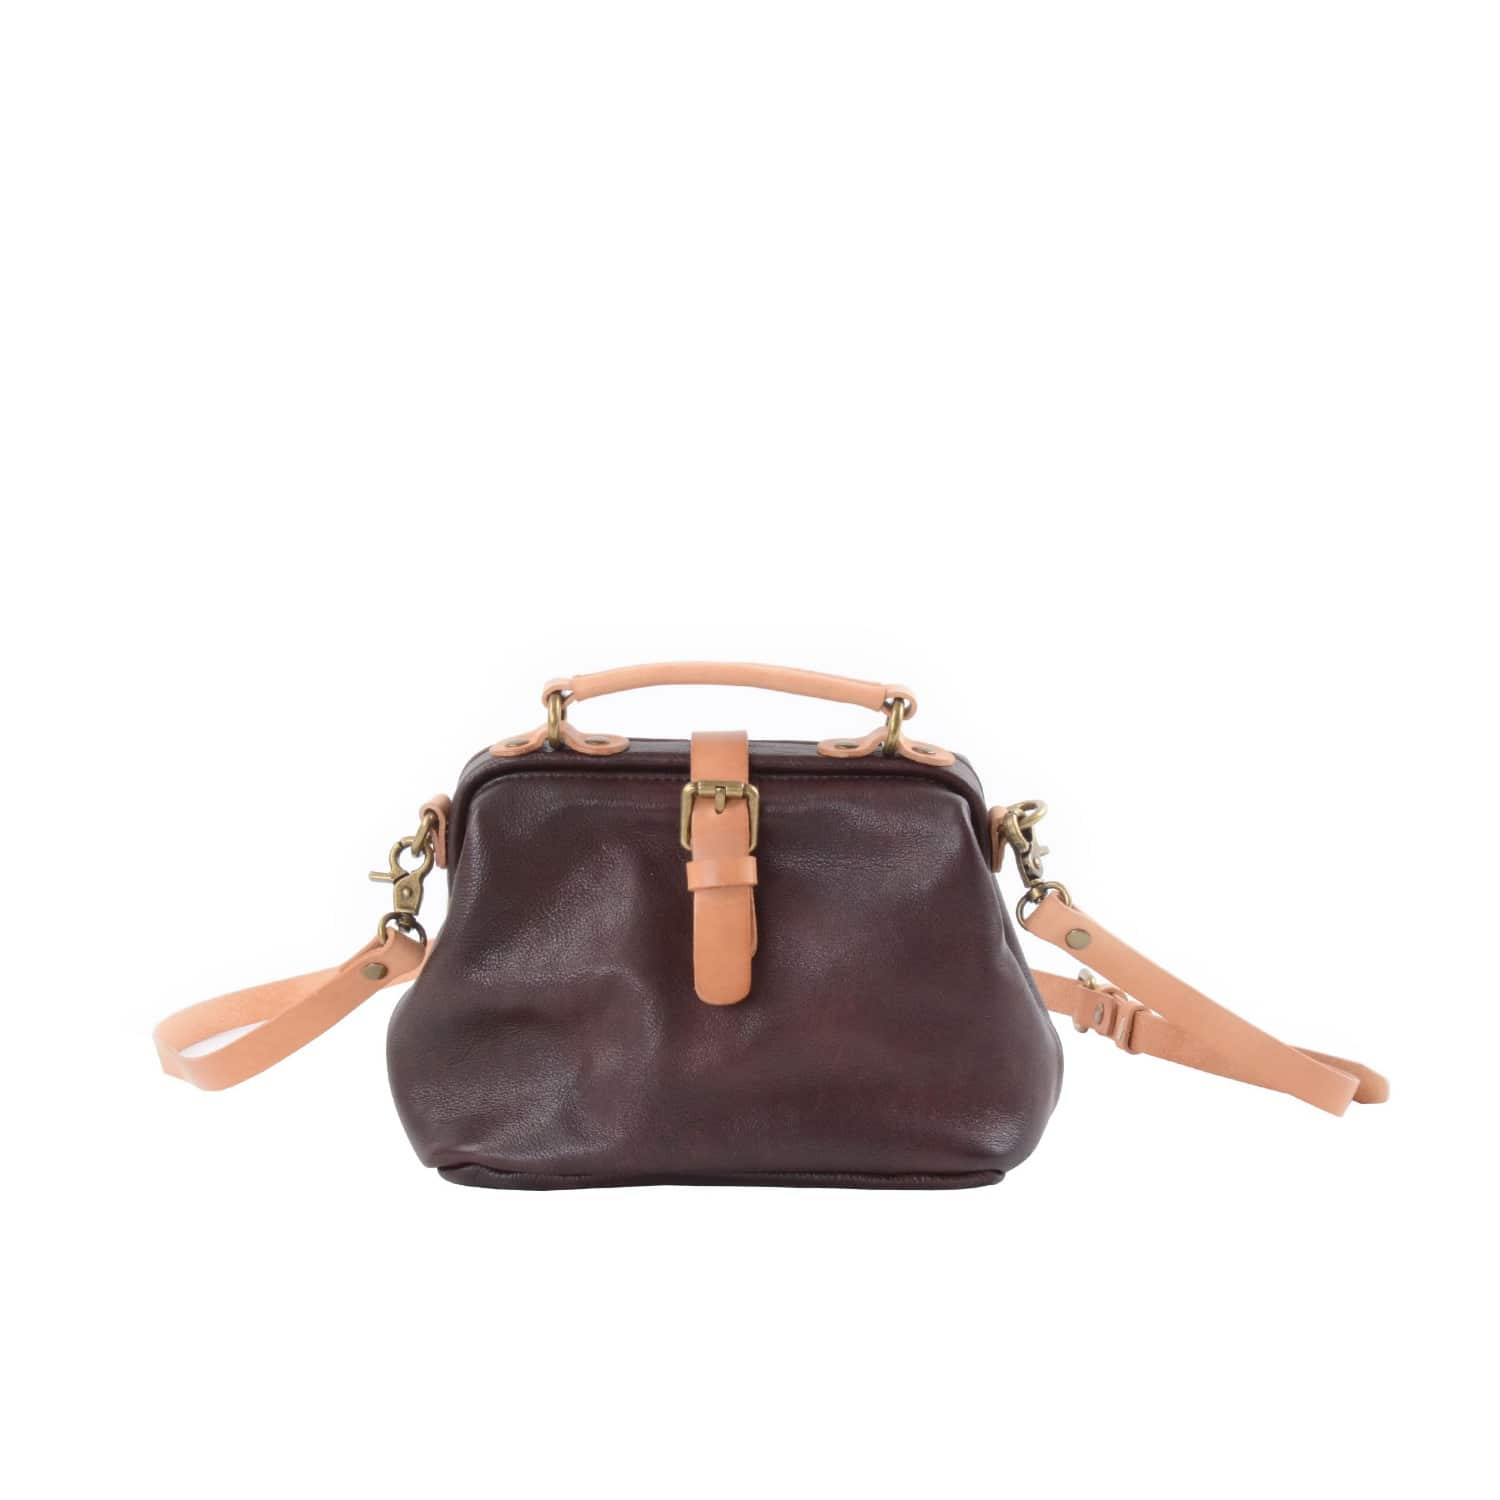 64e654bafd08 Flap Over Cross Body Leather Bag In Dark Brown